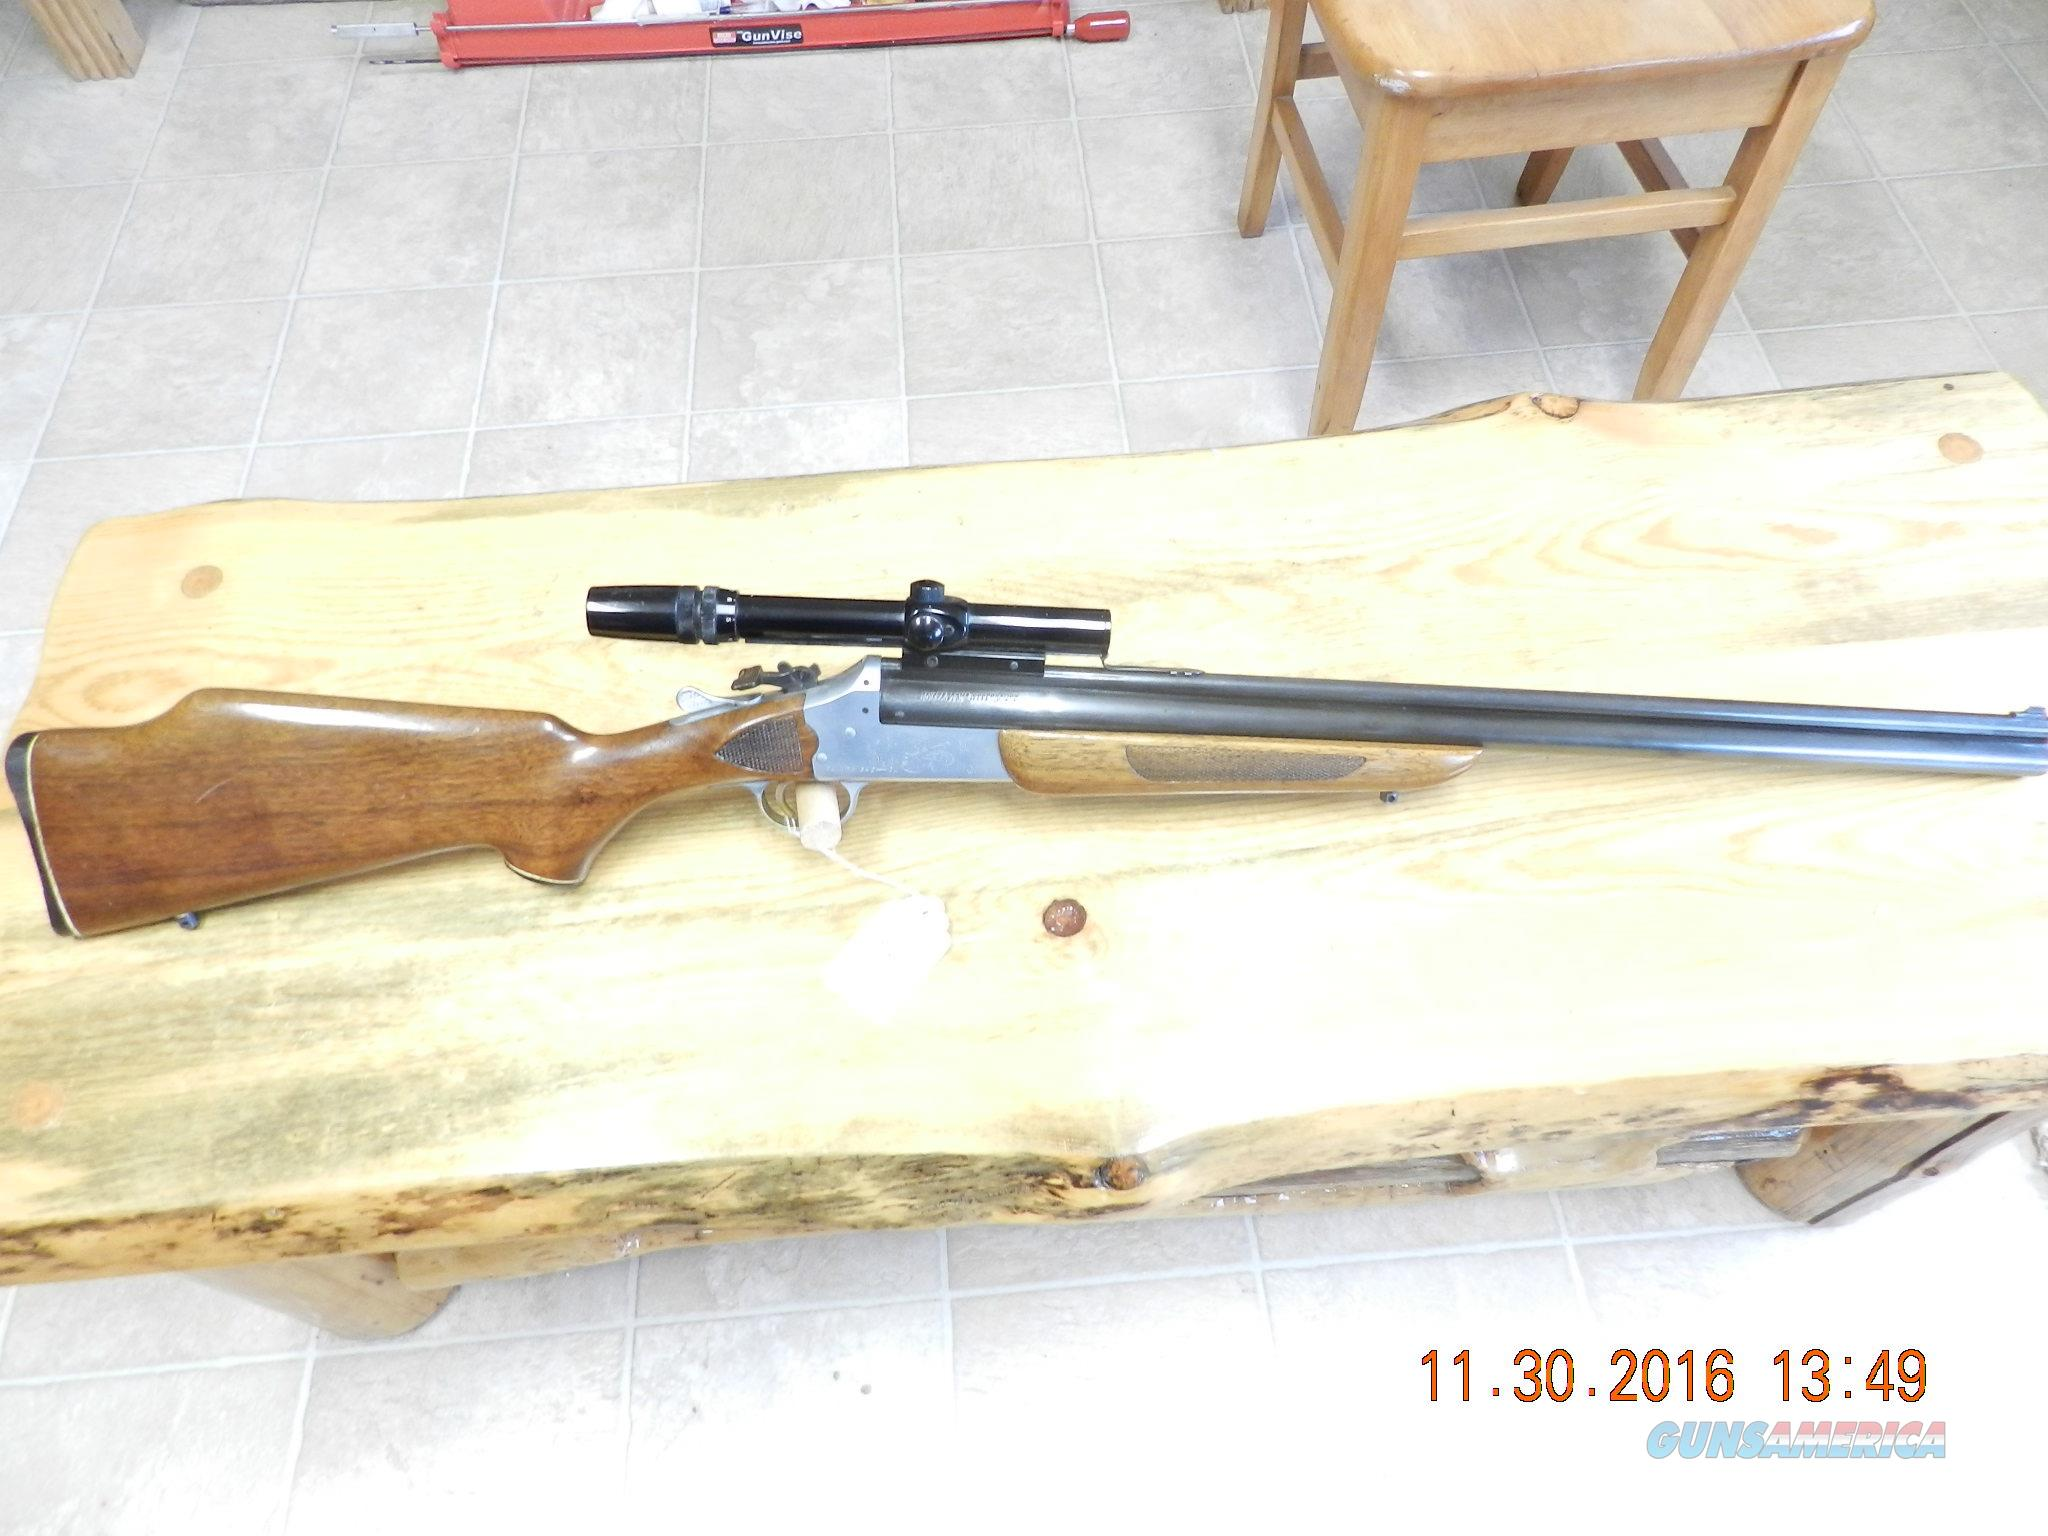 Savage 24 E-Dl 22 Magx 20 gauge 3 inch  Guns > Rifles > Savage Rifles > Other